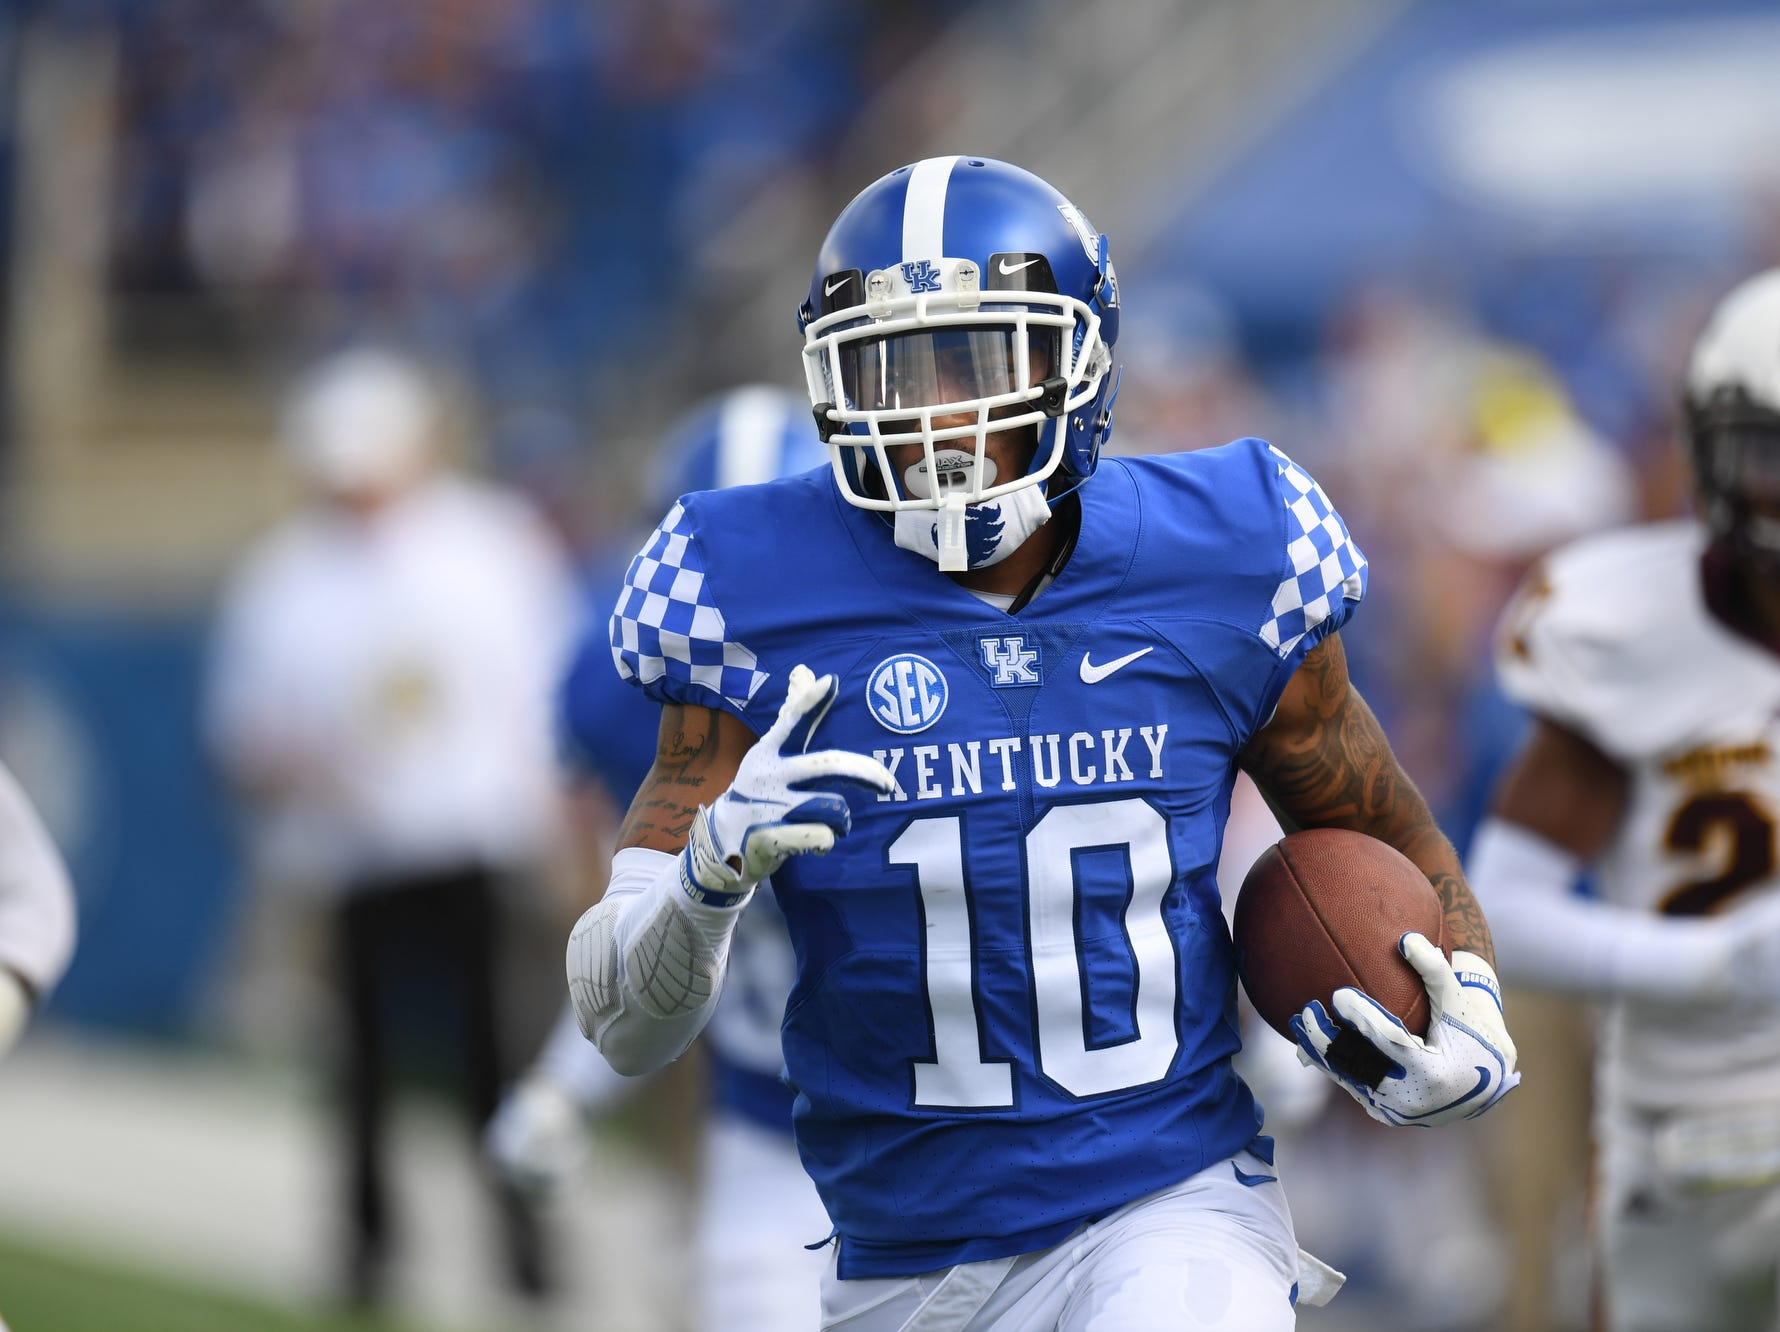 UK RB A.J. Rose runs for a touchdown during the University of Kentucky football game against Central Michigan at Kroger Field in Lexington, Kentucky on Saturday, September 1, 2018.